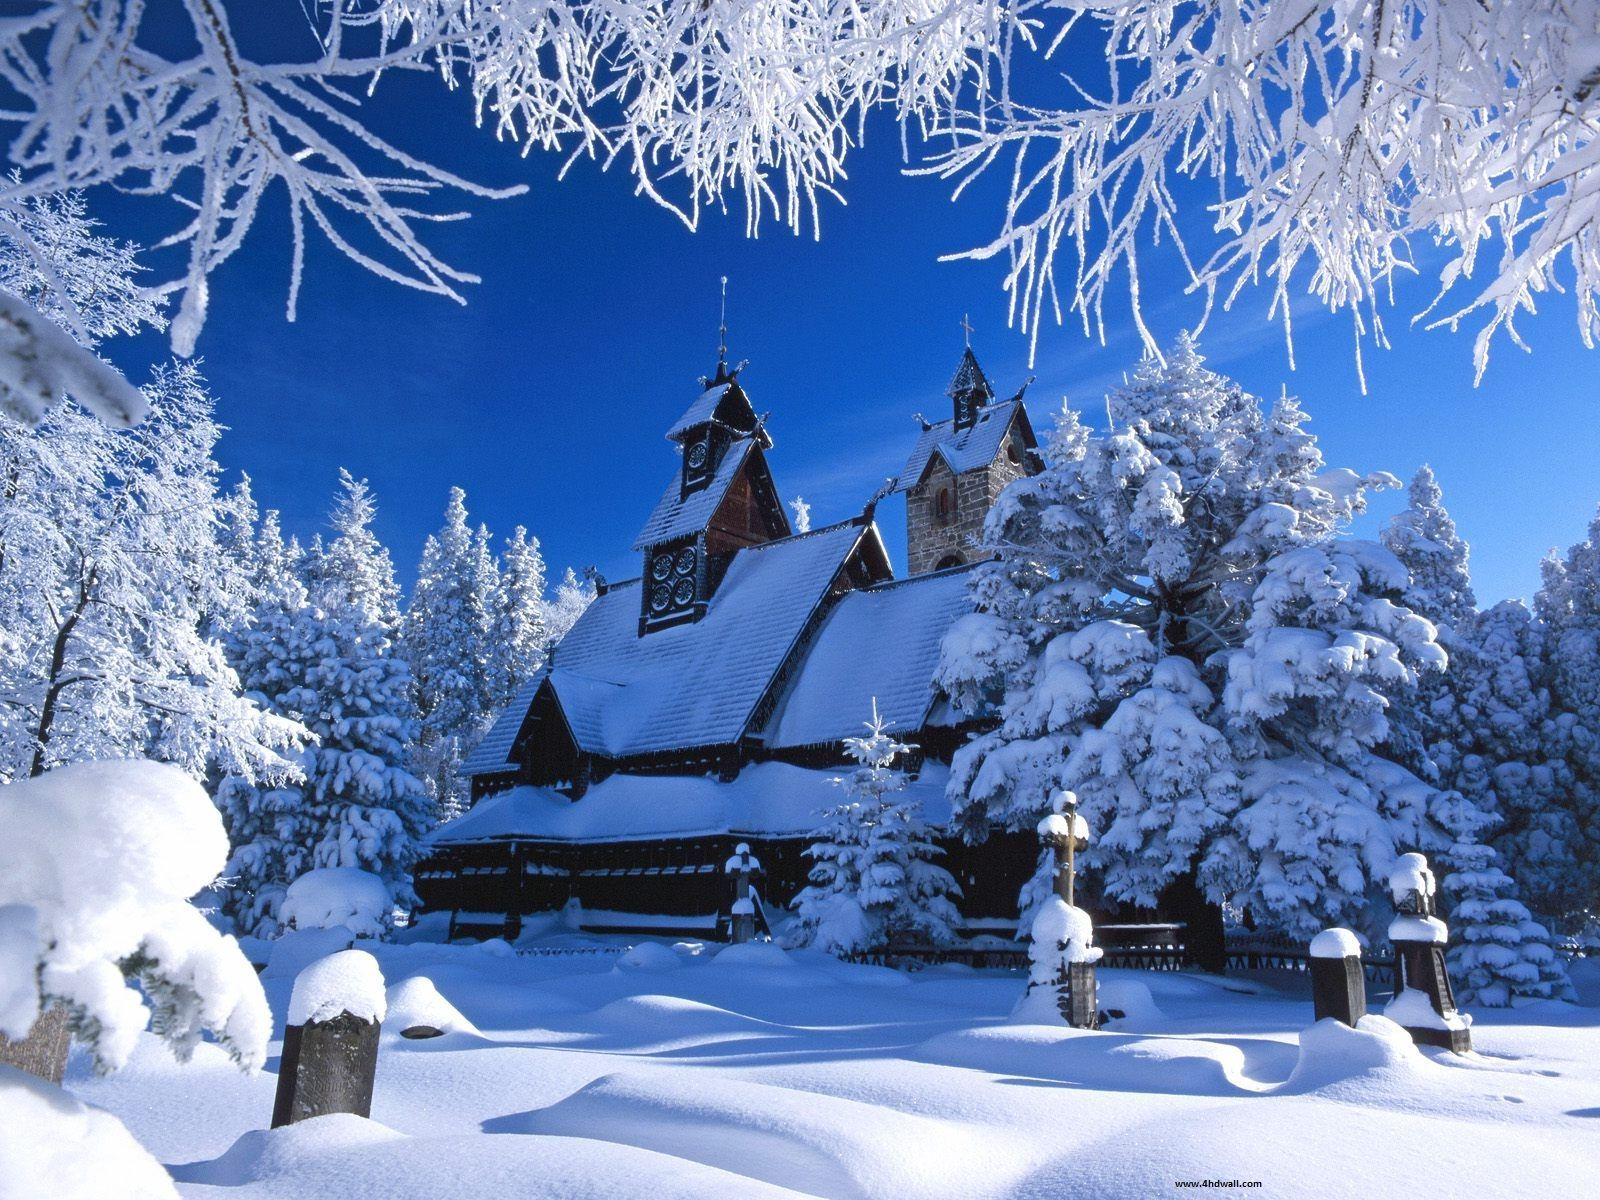 Beautiful Christmas Pictures For Desktop Desktop Wallpaper Winter Scenes Desktop Wallpaper Winter Winter Wallpaper Desktop Winter Wallpaper Winter Images